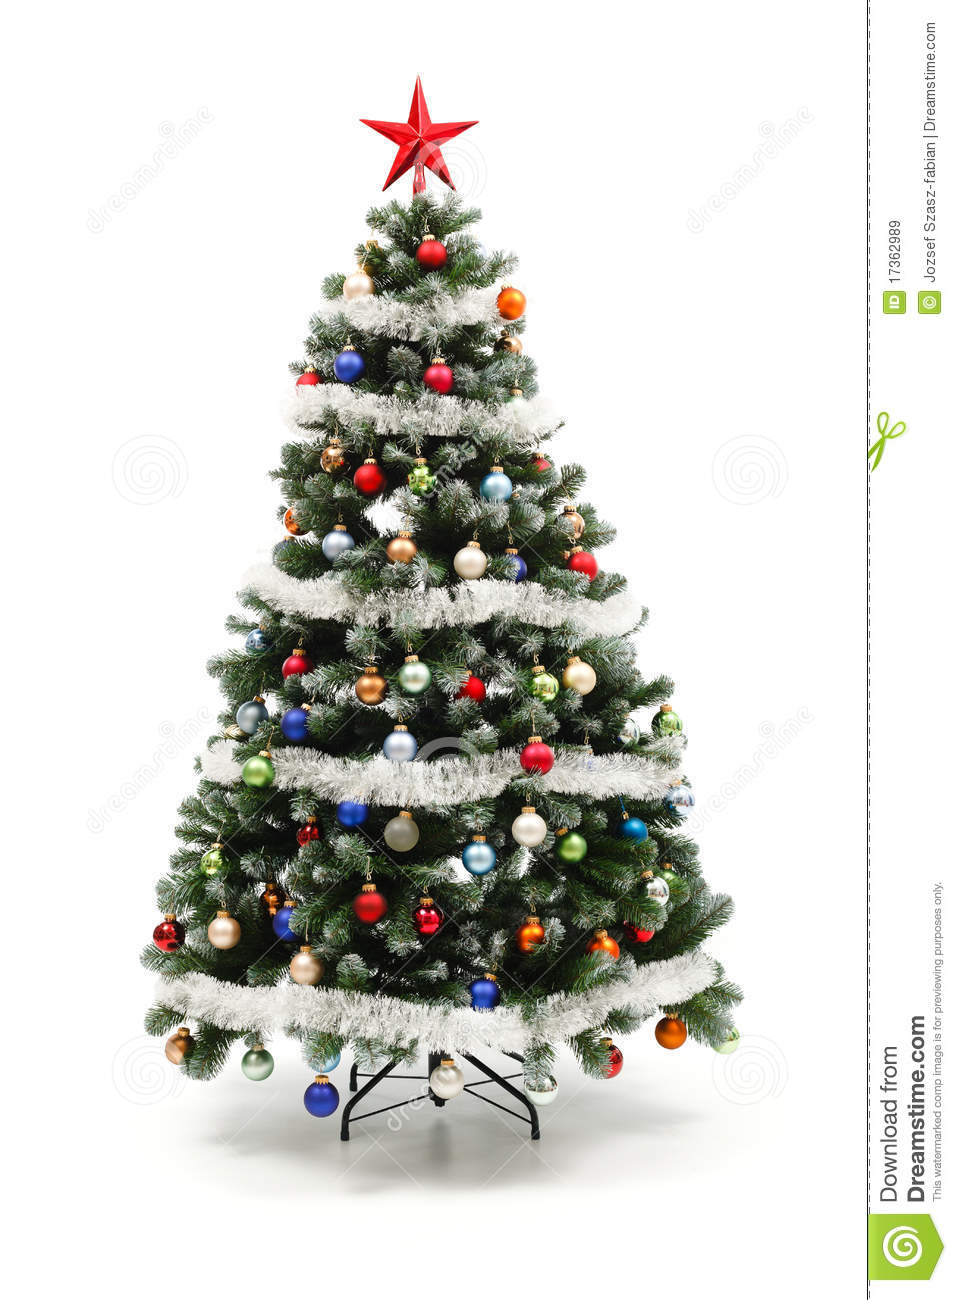 colorful decorated artificial christmas tree